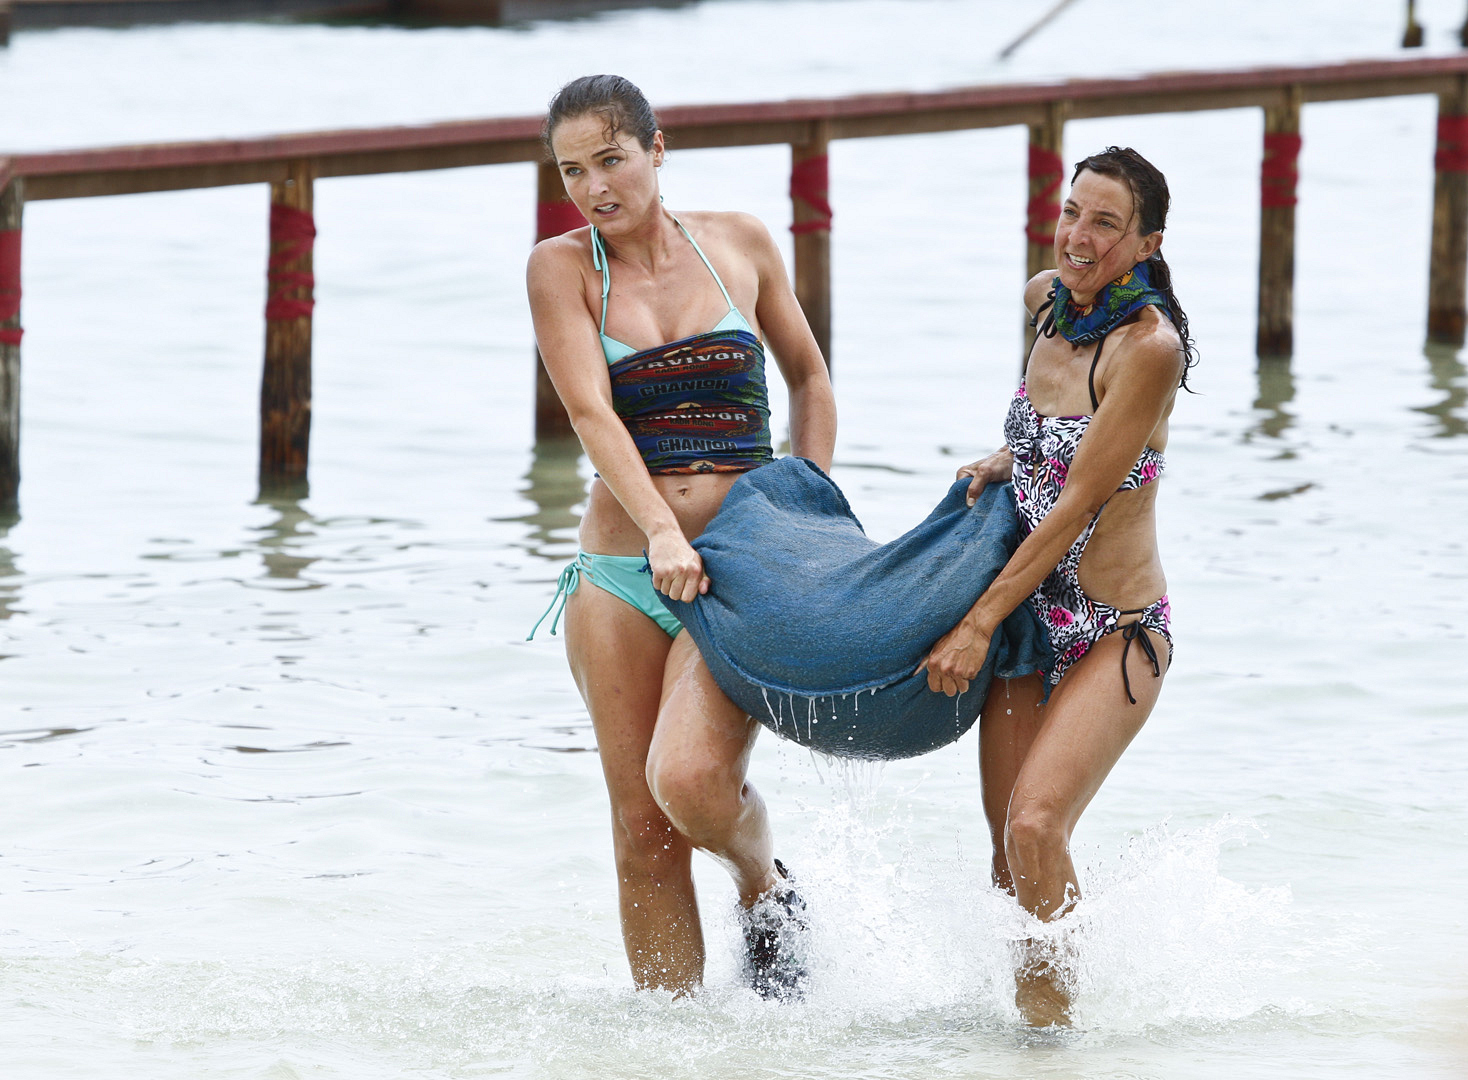 Liz and Debbie work together and try to win Immunity for the Brains Tribe.